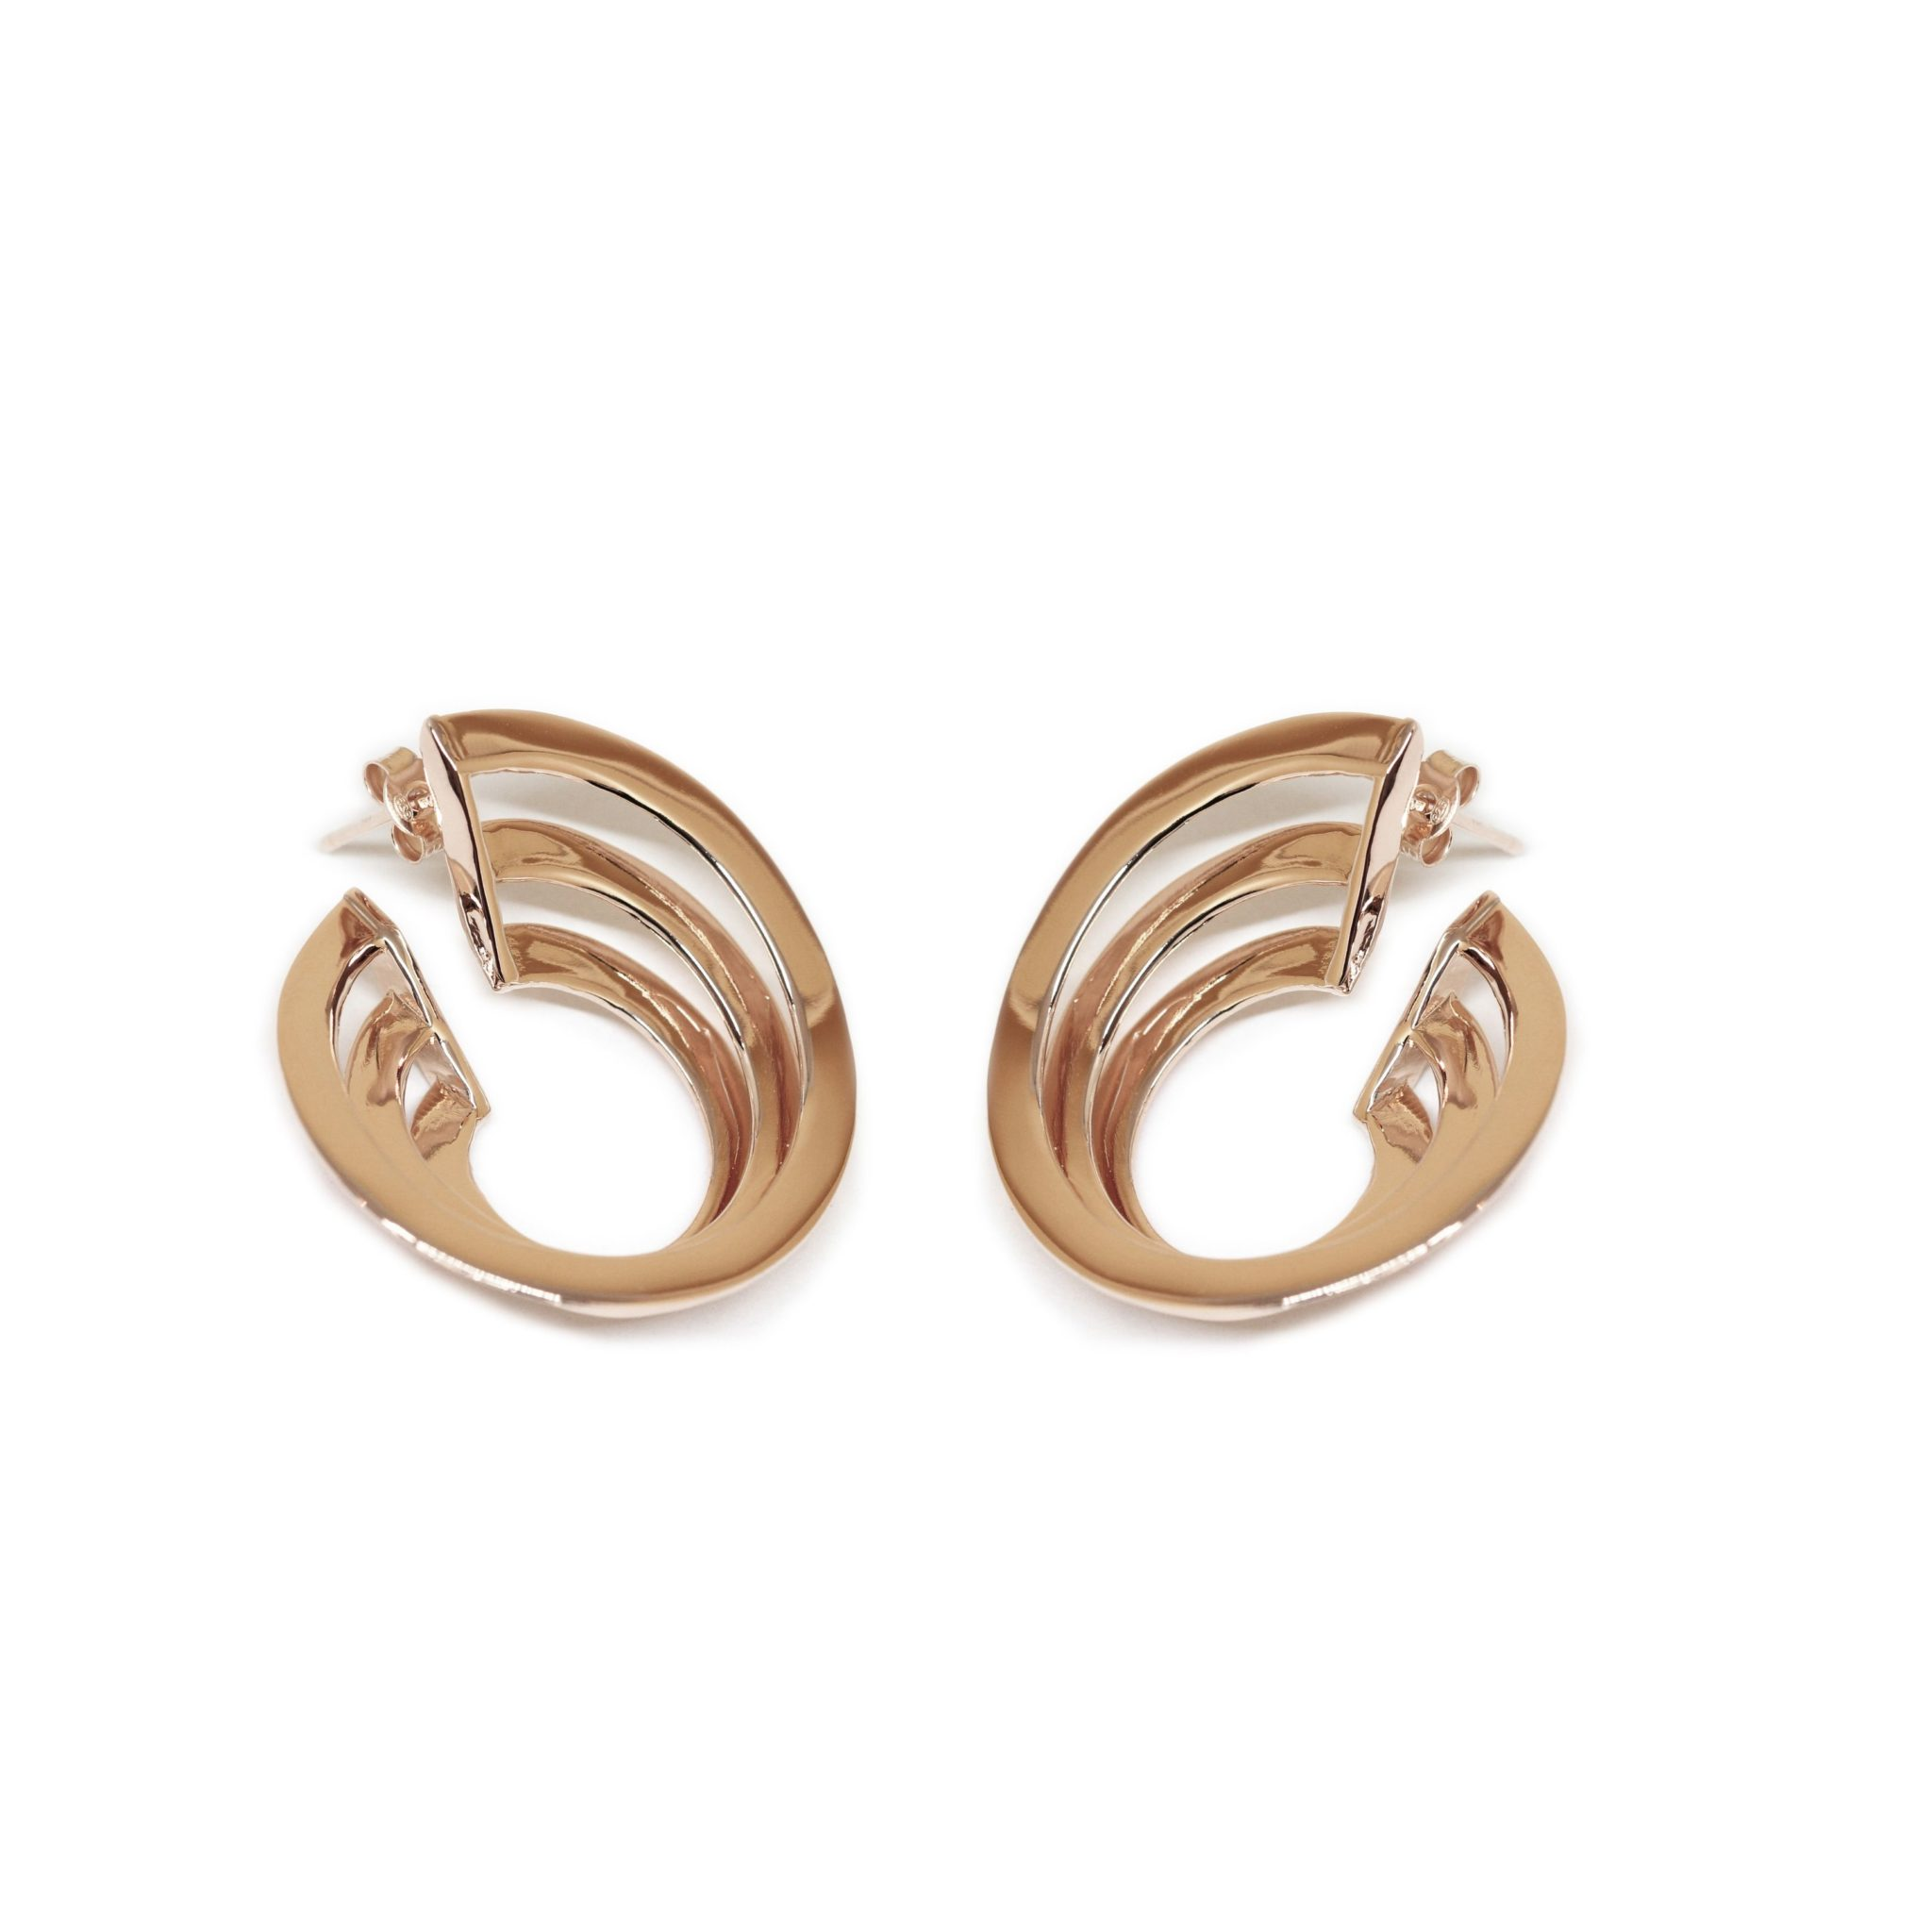 Guggenheim Earrings